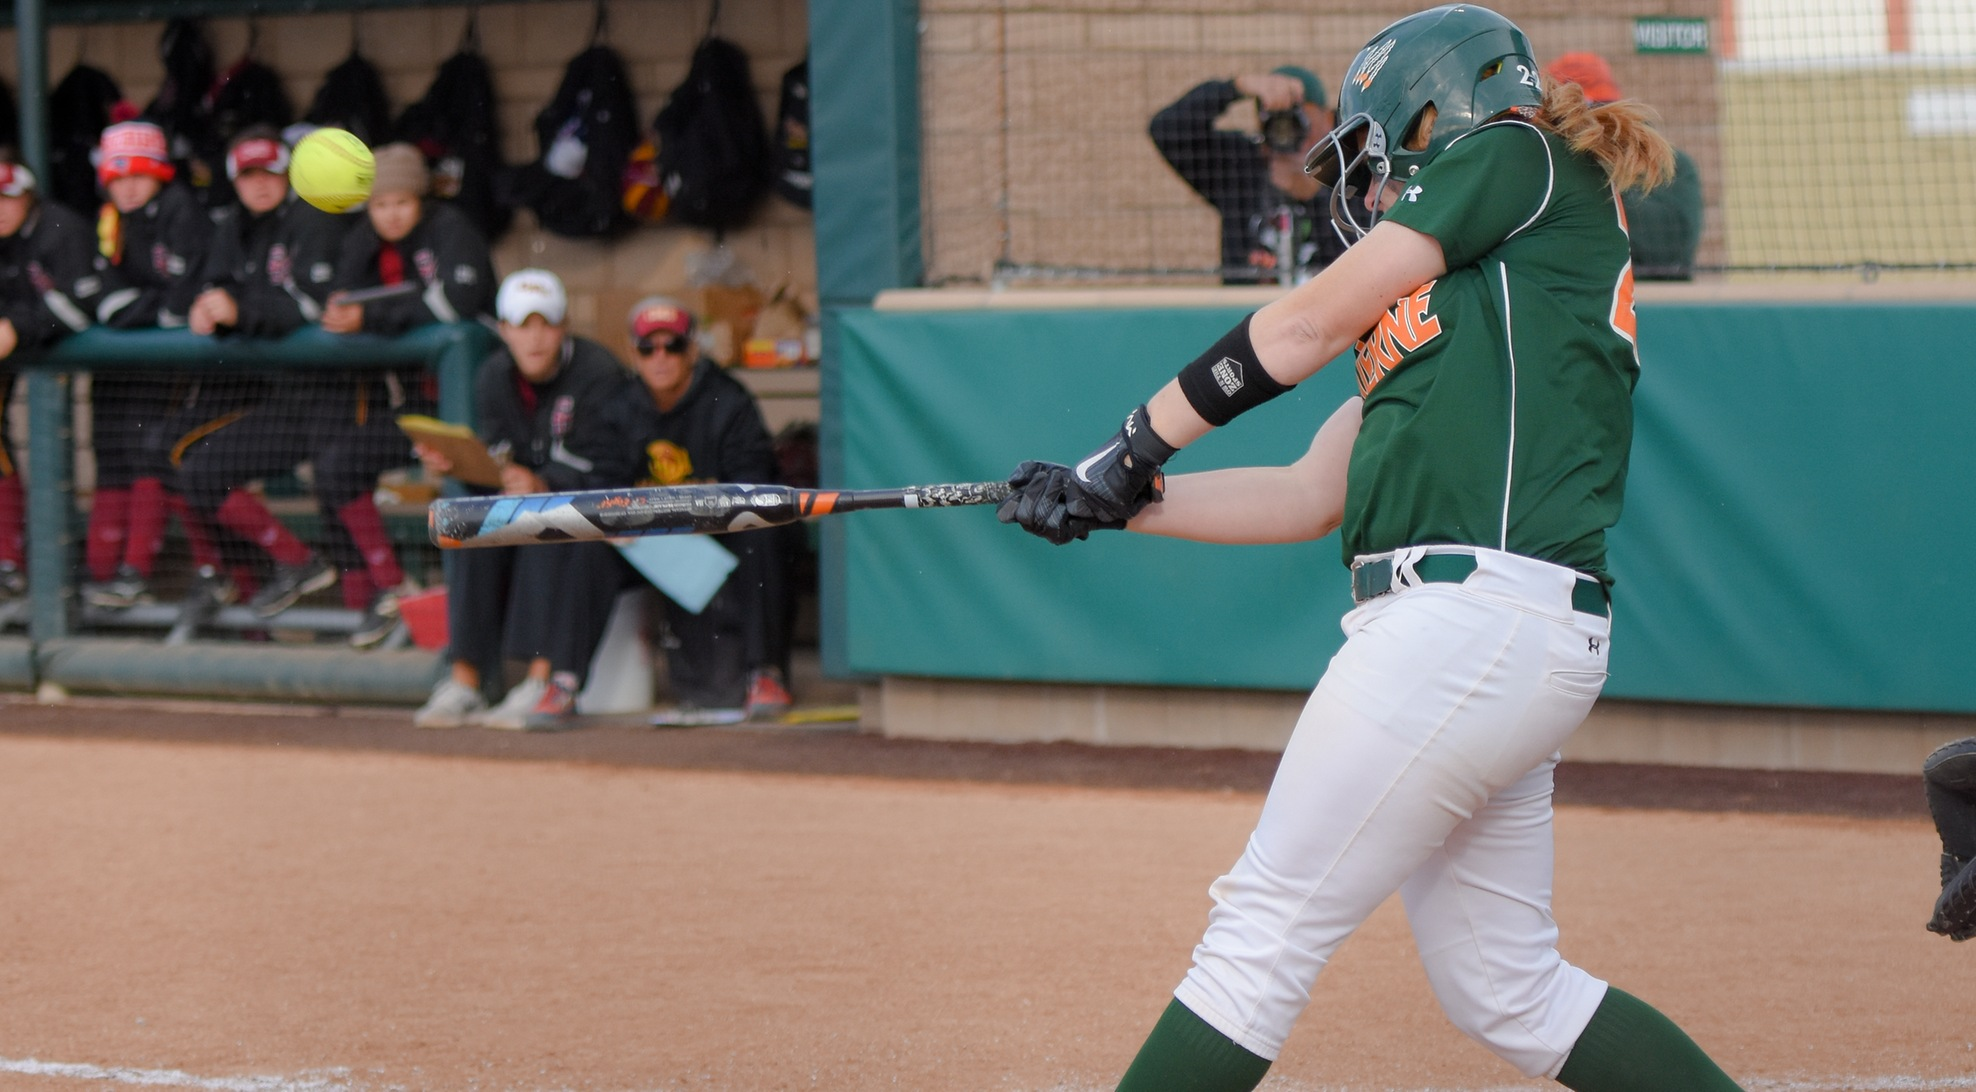 Schiff named NFCA First Team All-West Region